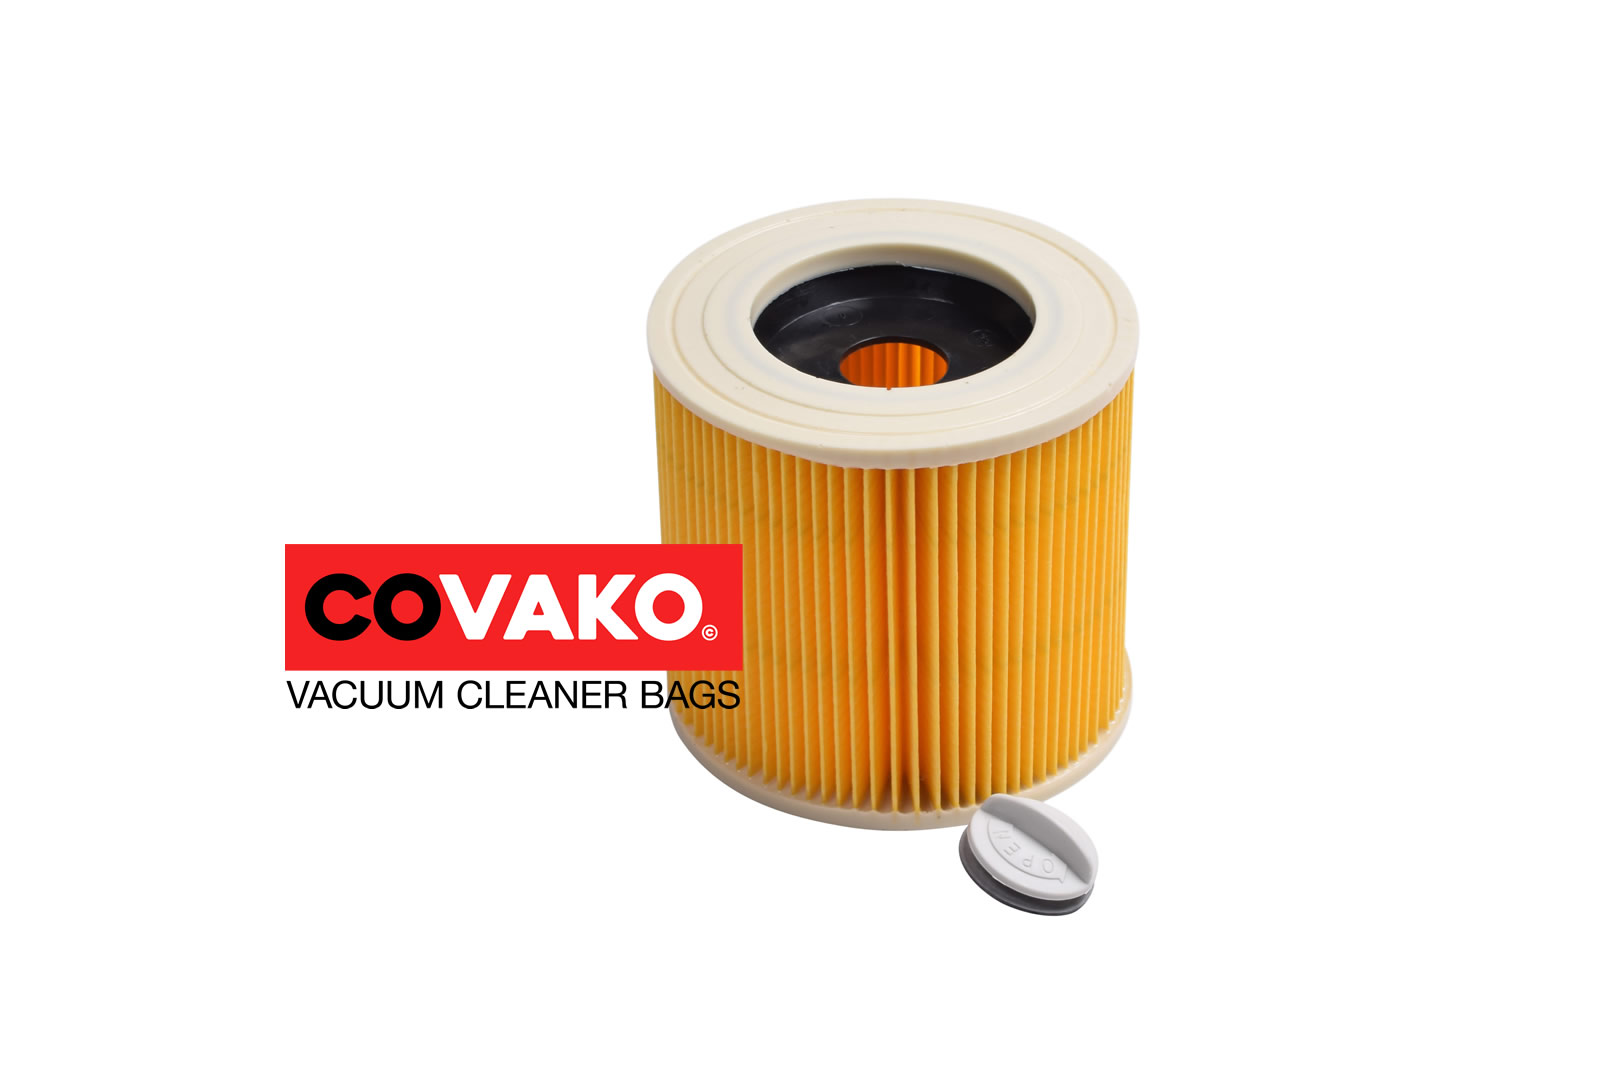 Exhaust air filter / Part Item - Abluftfiltervacuum cleaner bags